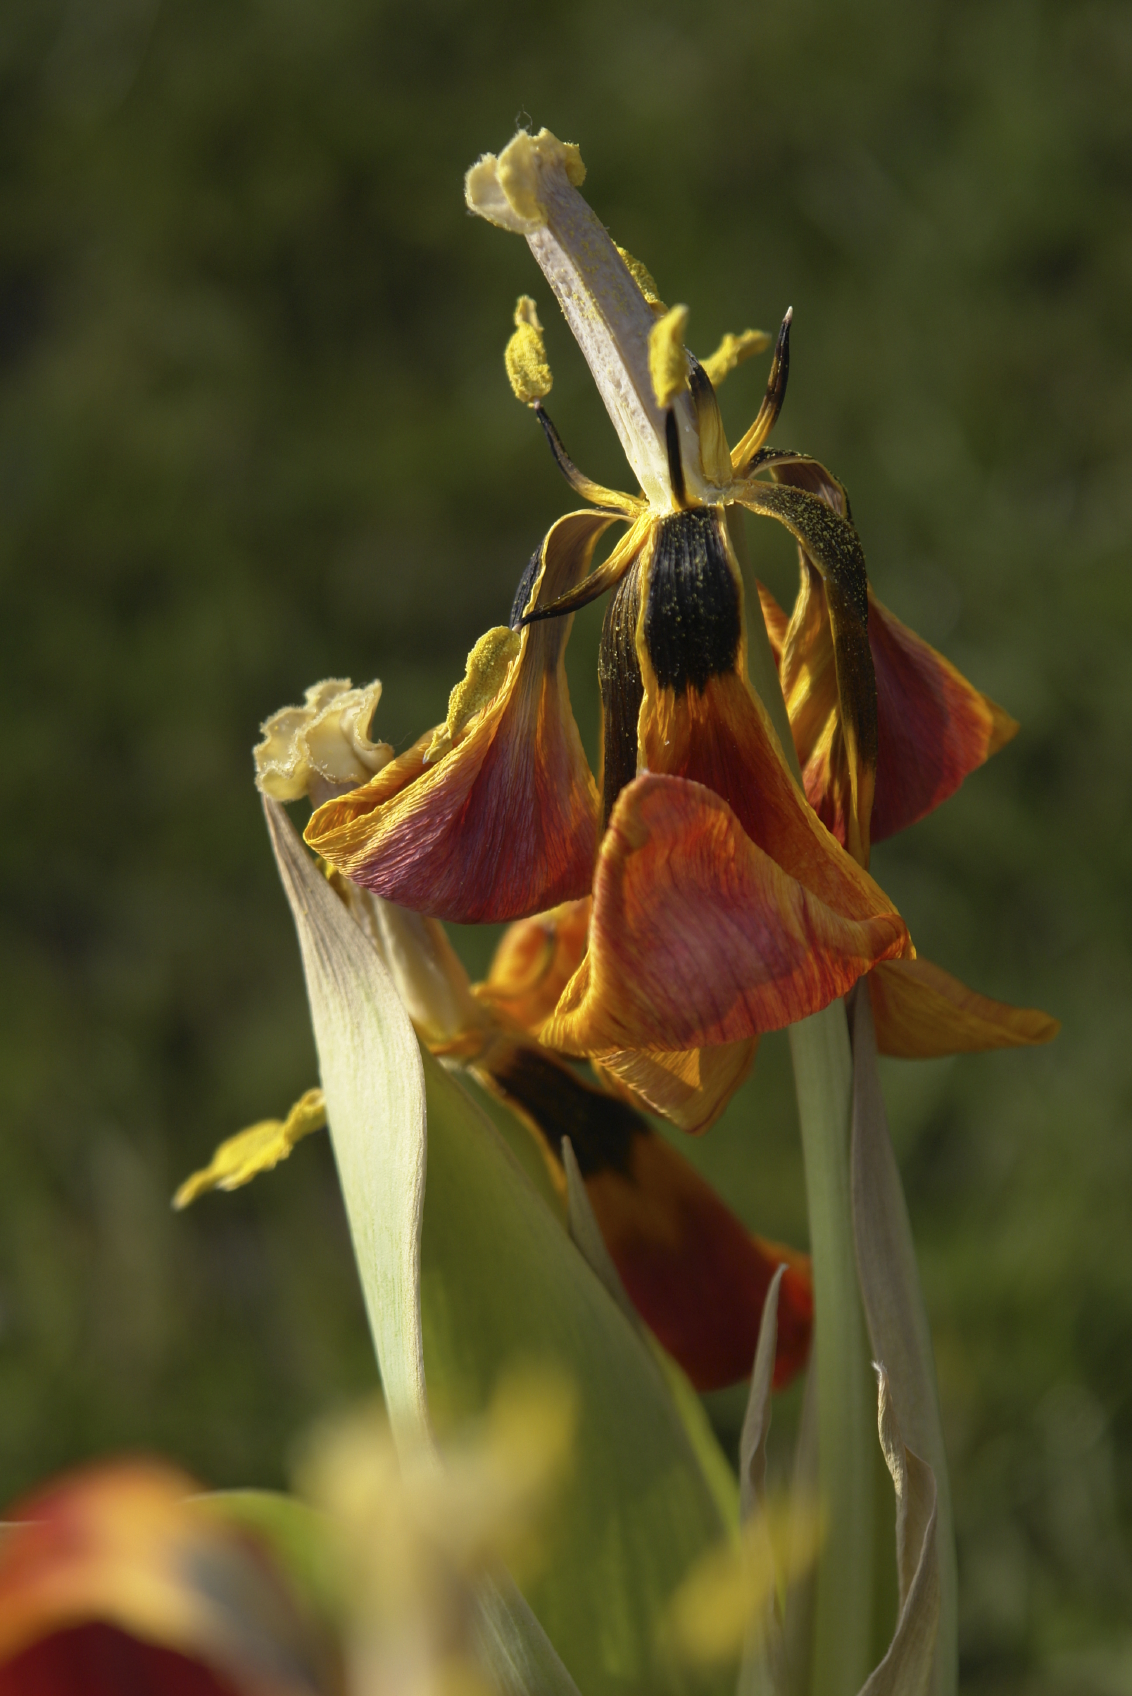 Deadheading Flowers How And Why To Remove Dead Flowers From Plants